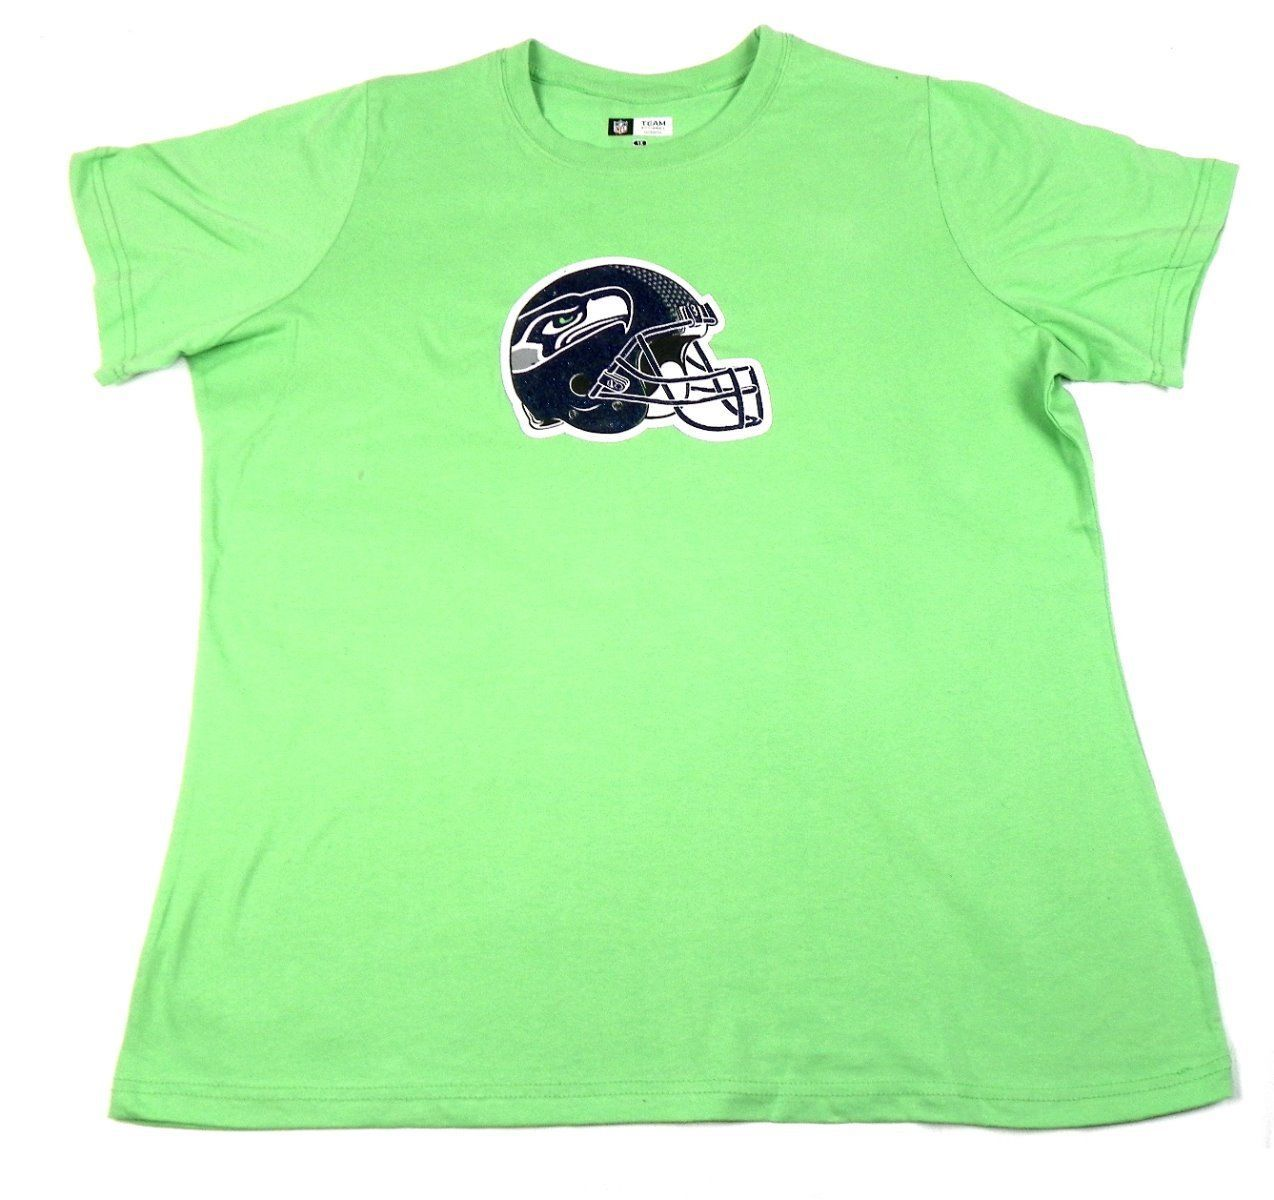 Women's Plus Seattle Seahawks Shirt NFL Bright Green Tee T-Shirt NEW Football